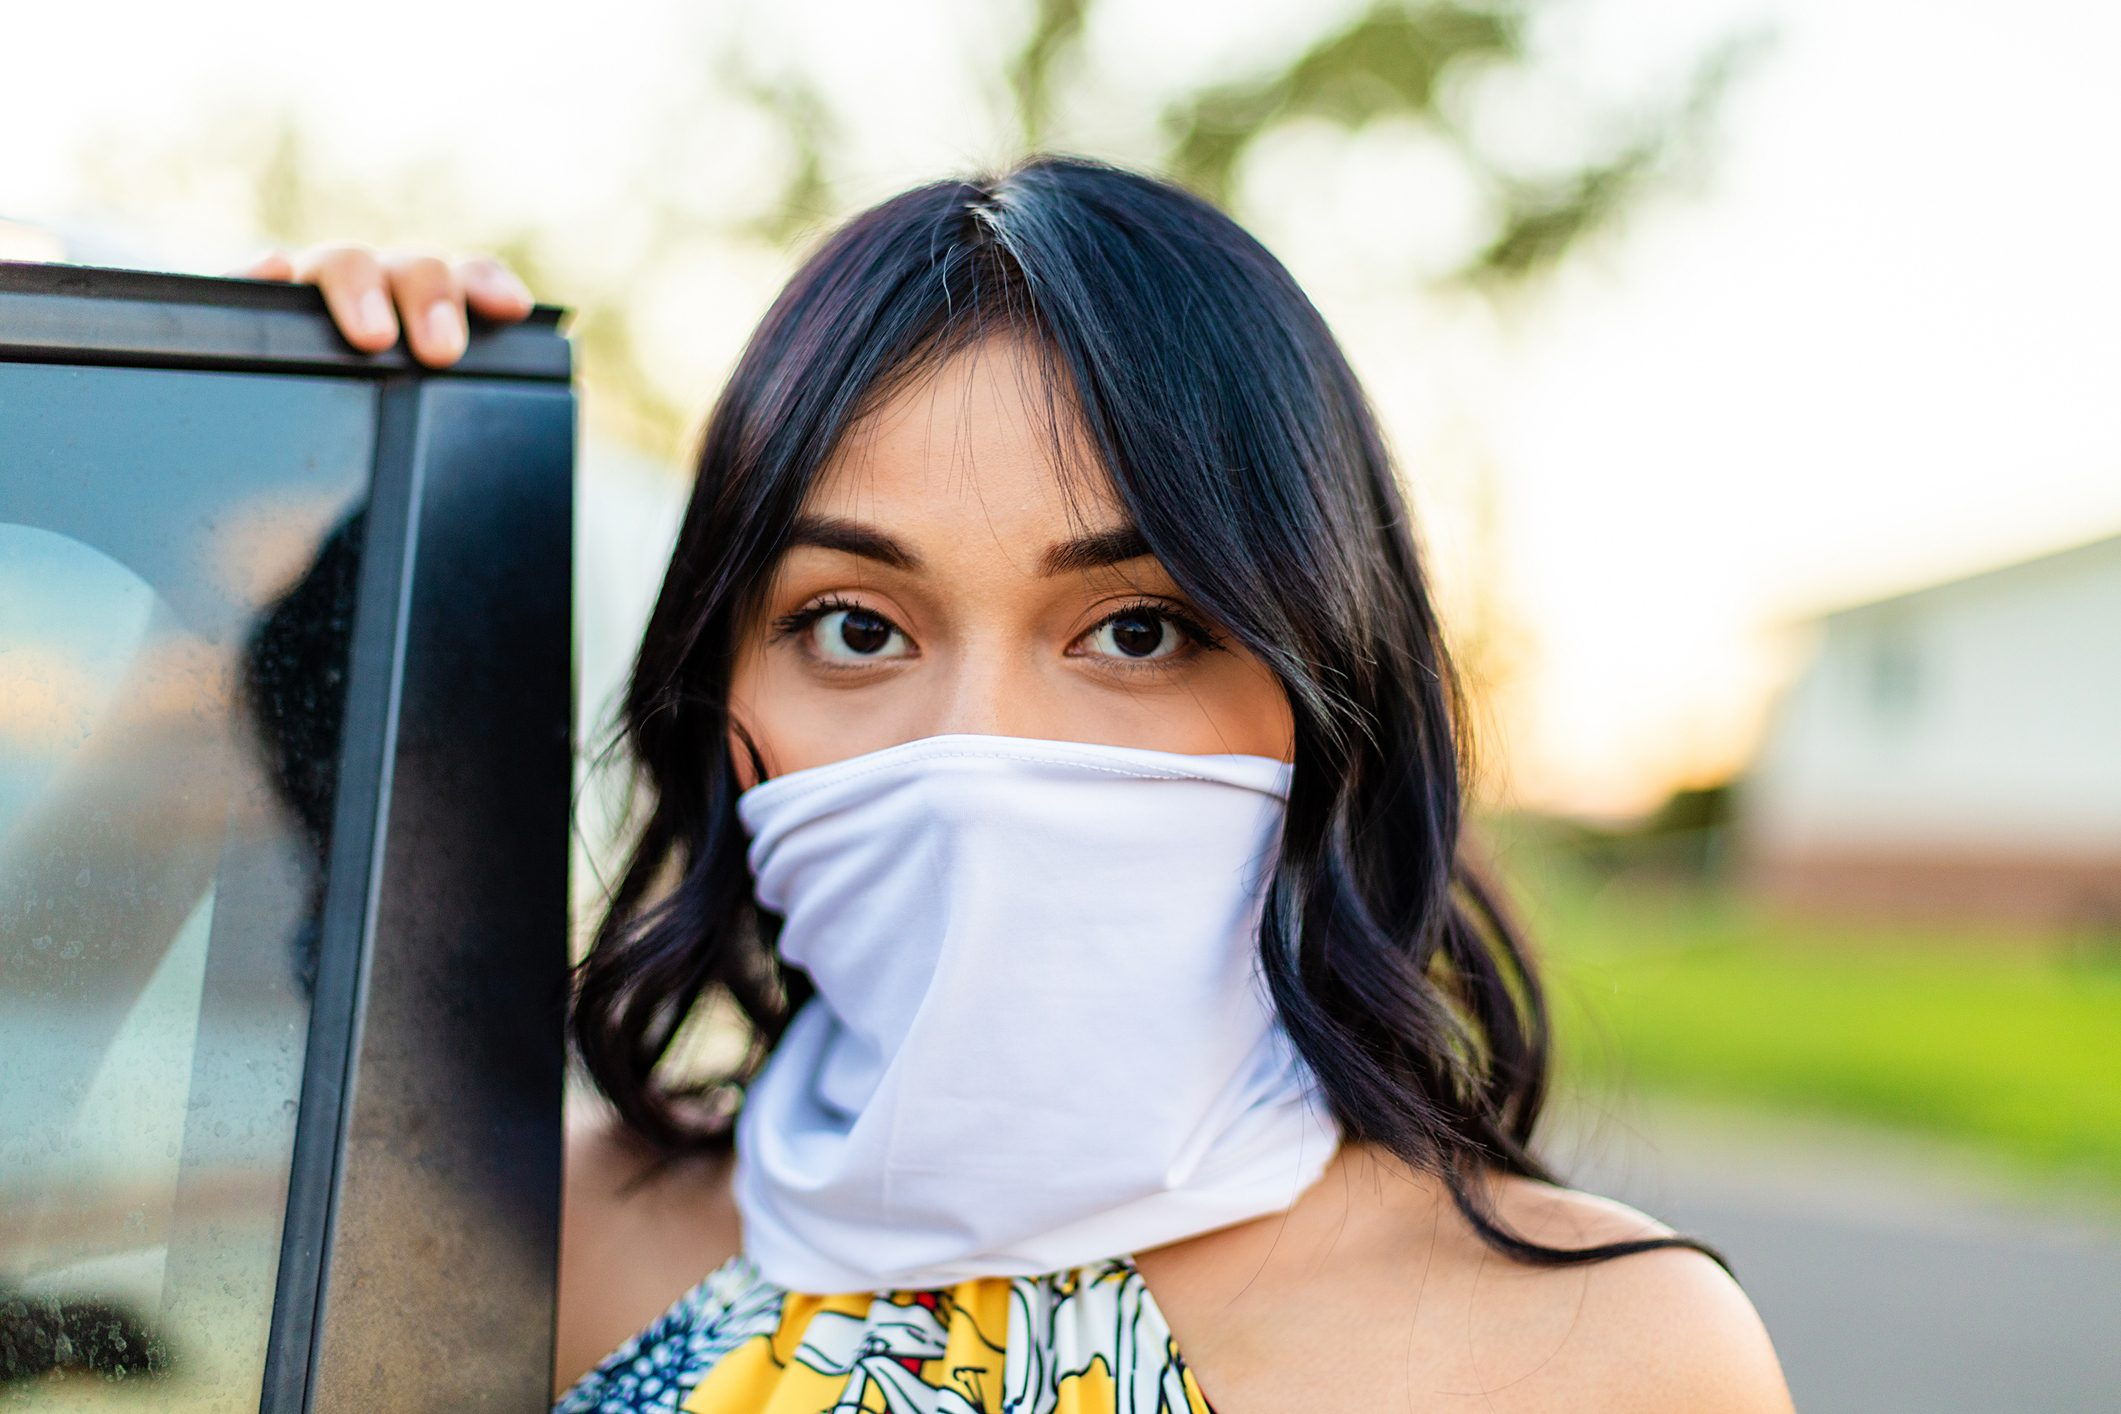 Generation Z Female Next to Automobile with Scarf as Face Mask Covering